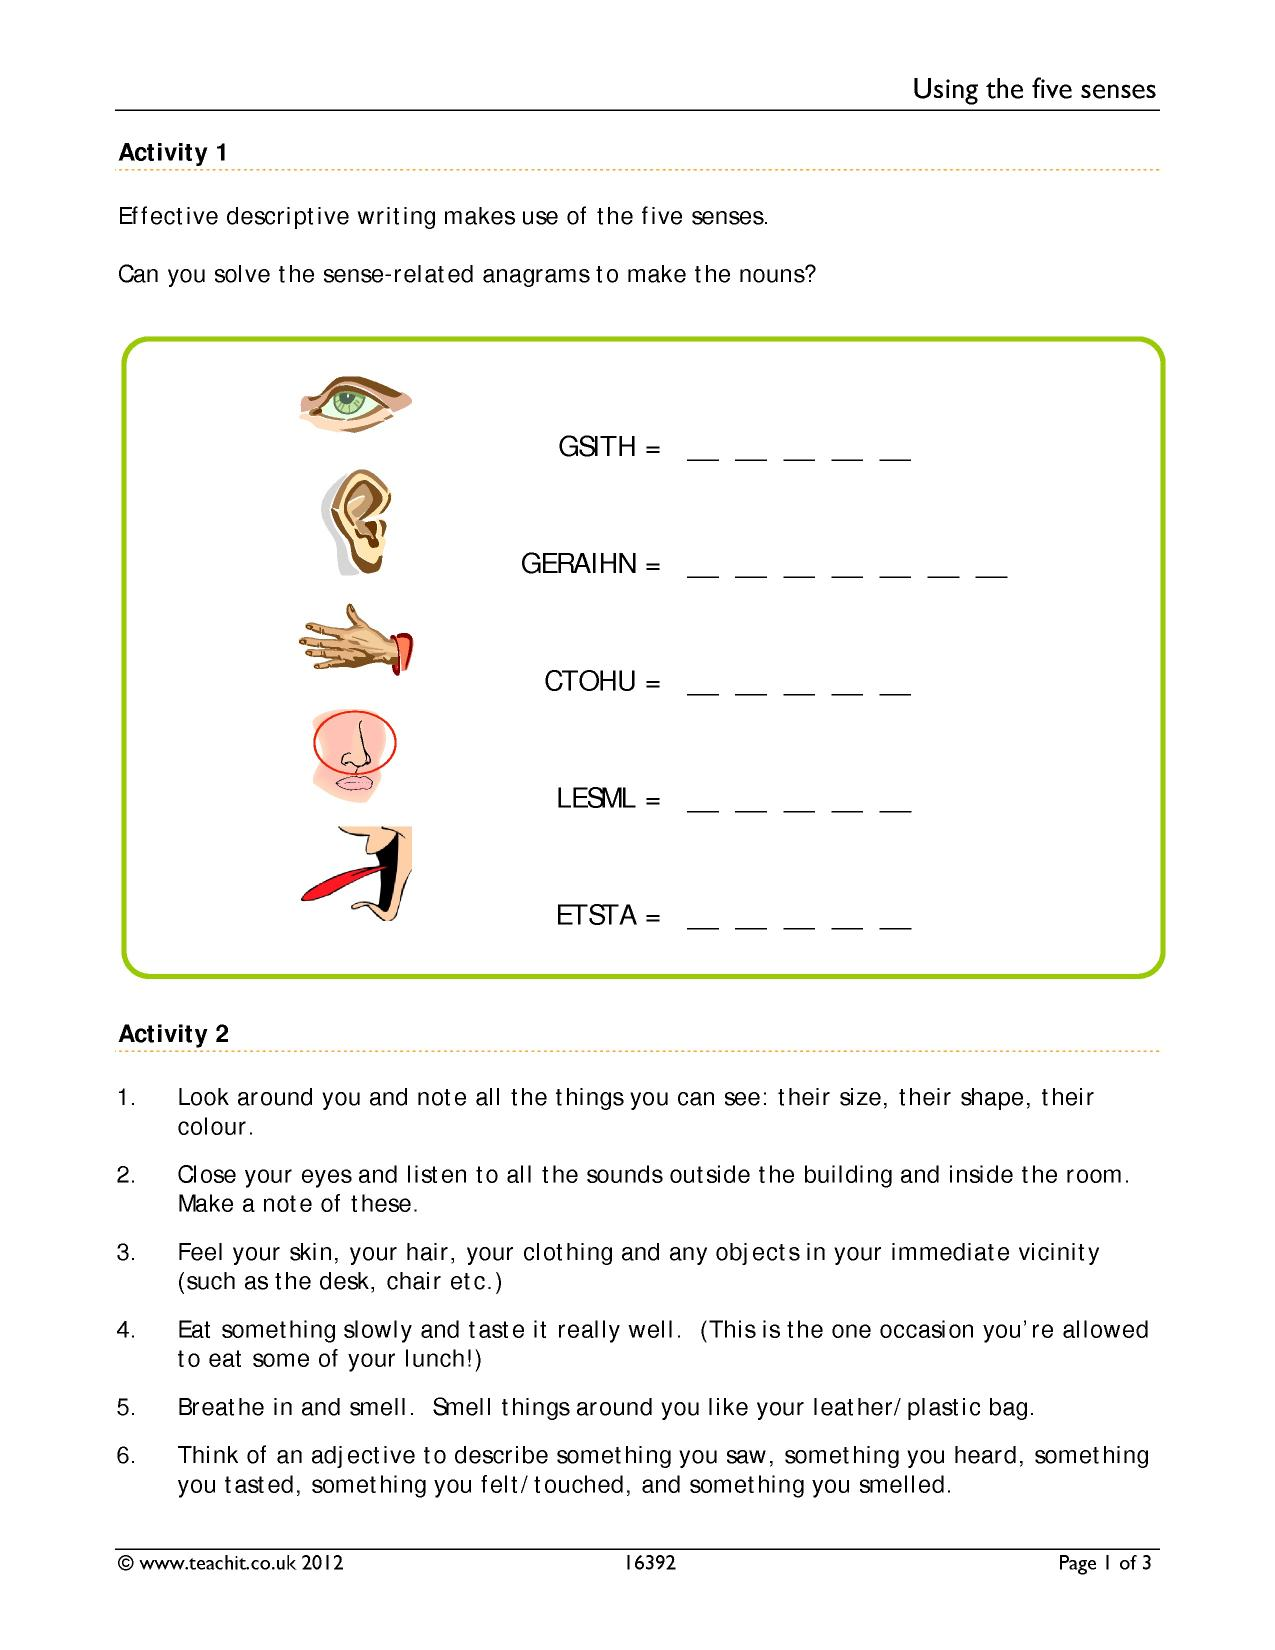 Descriptive language and using our senses | A descriptive writing lesson